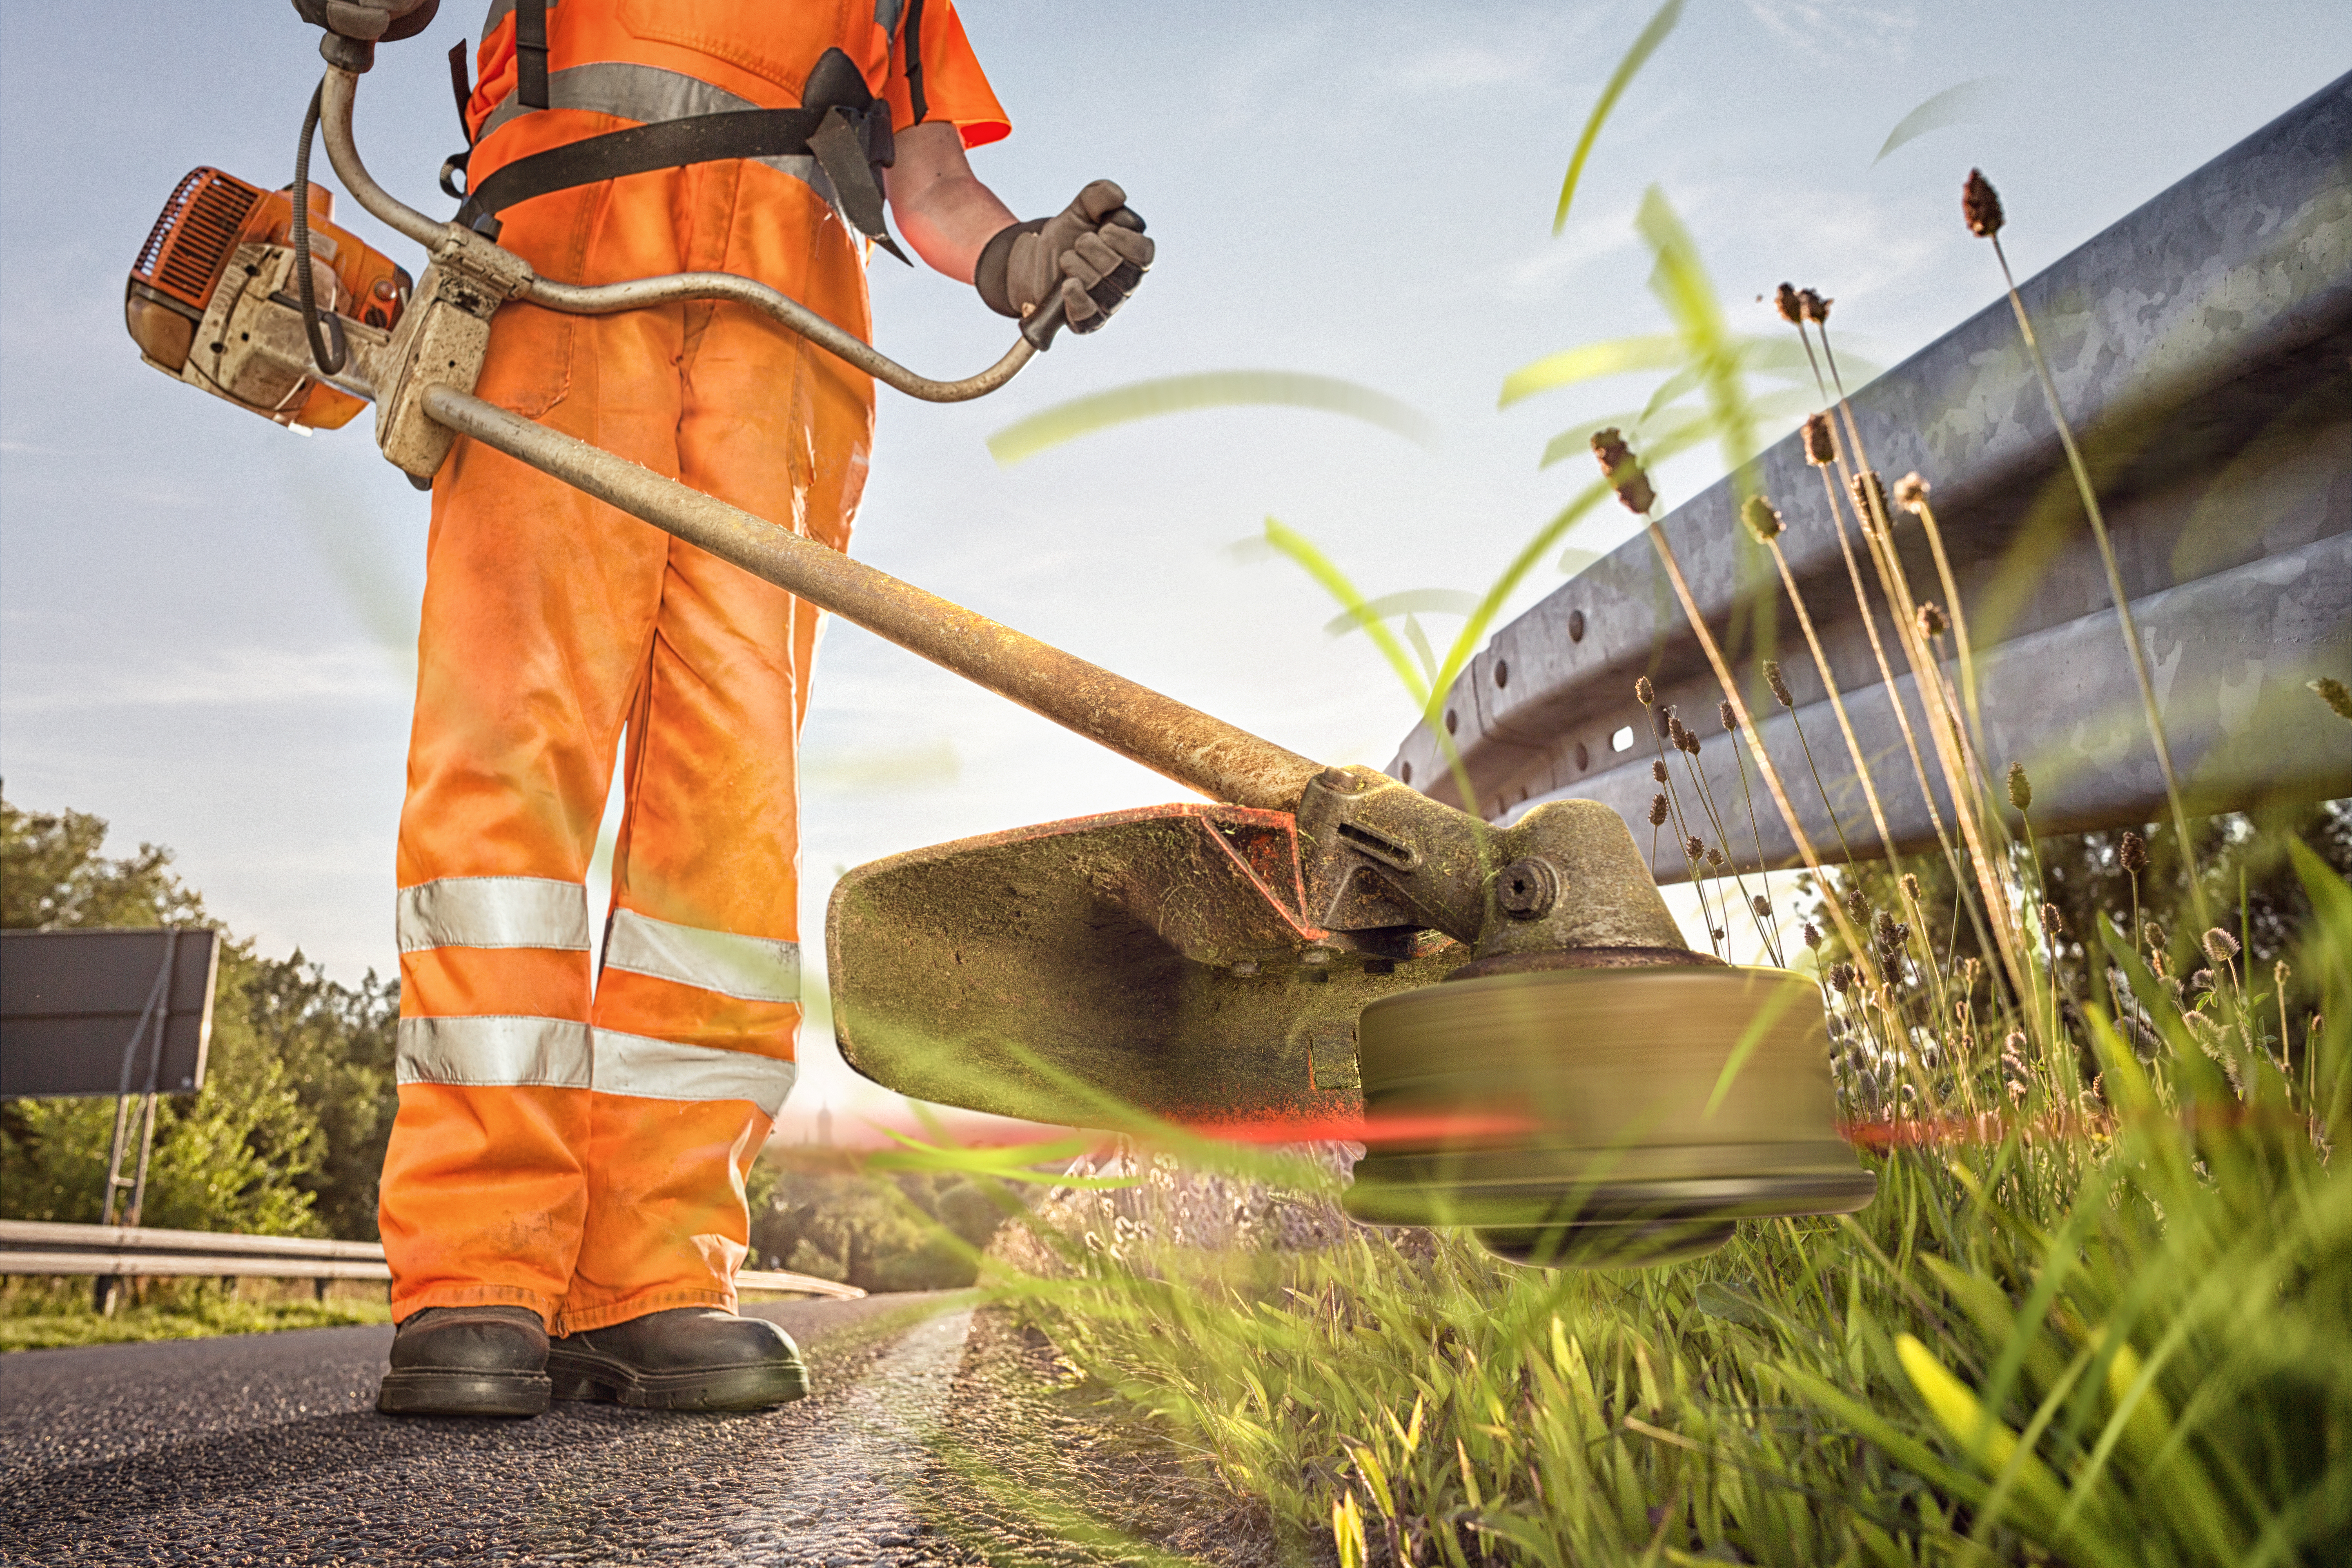 How to Unflood a Weed Eater | Home Guides | SF Gate